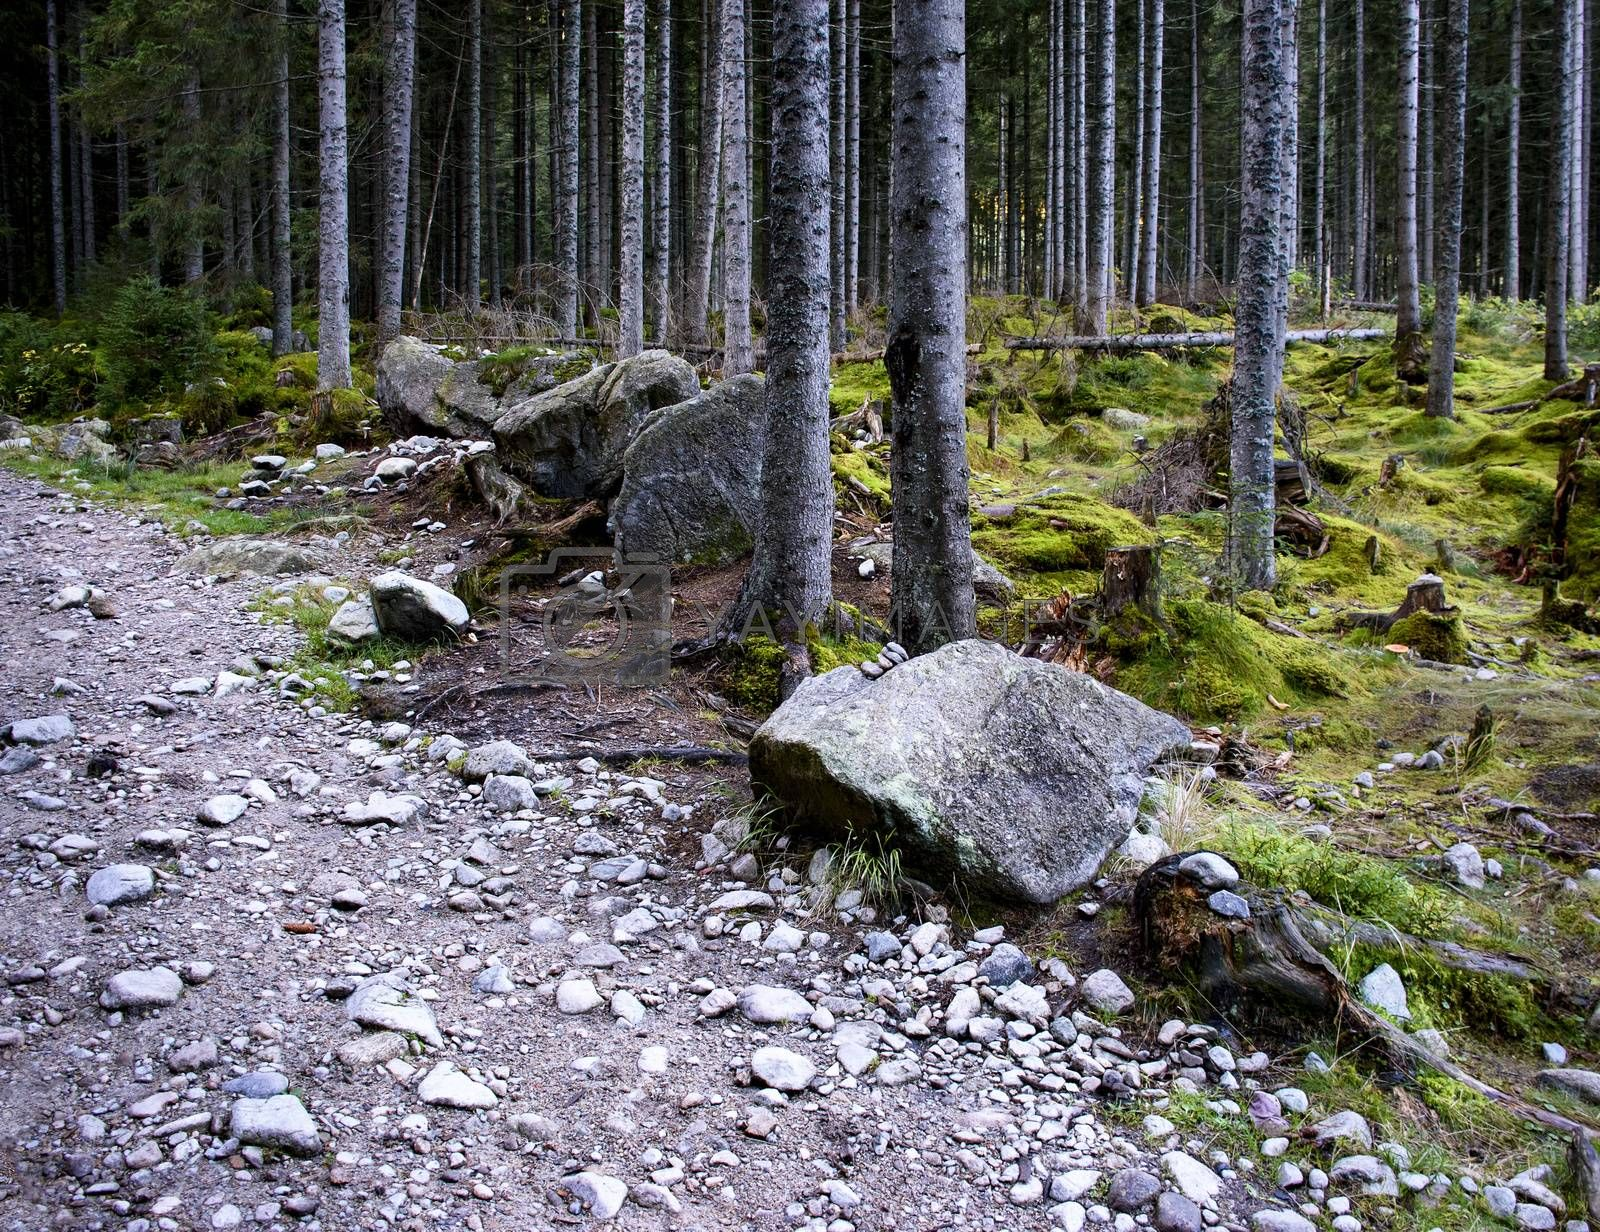 landscape background stone path at the edge of the forest